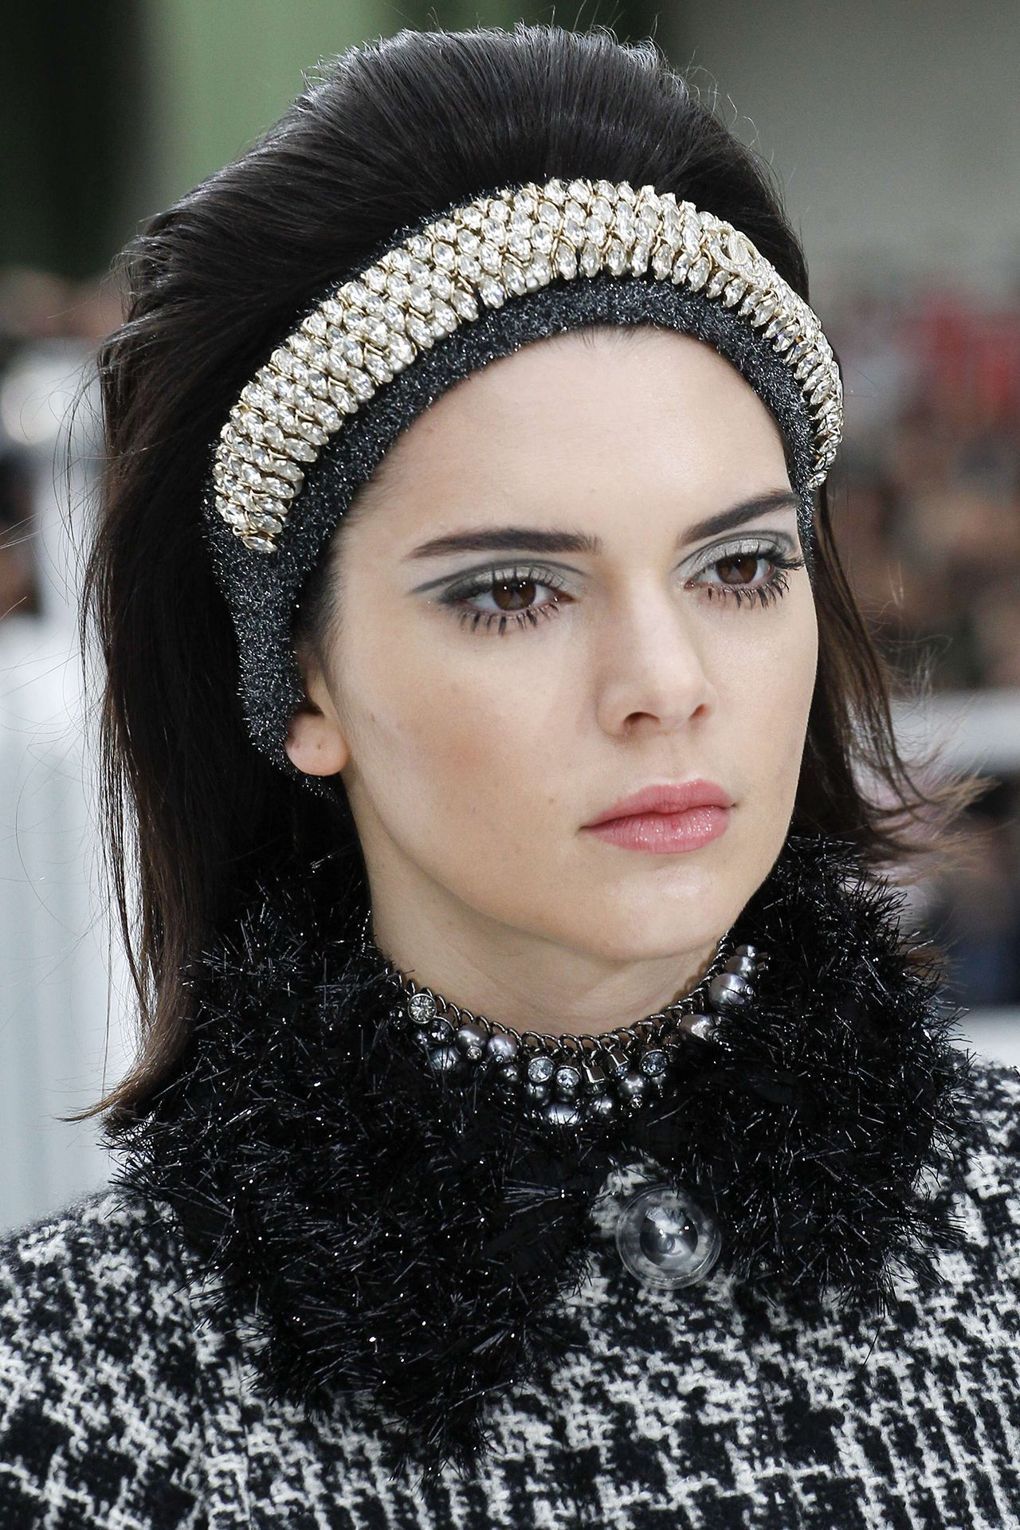 The City: Paris The Show: Chanel The Look: Metallic hair bands